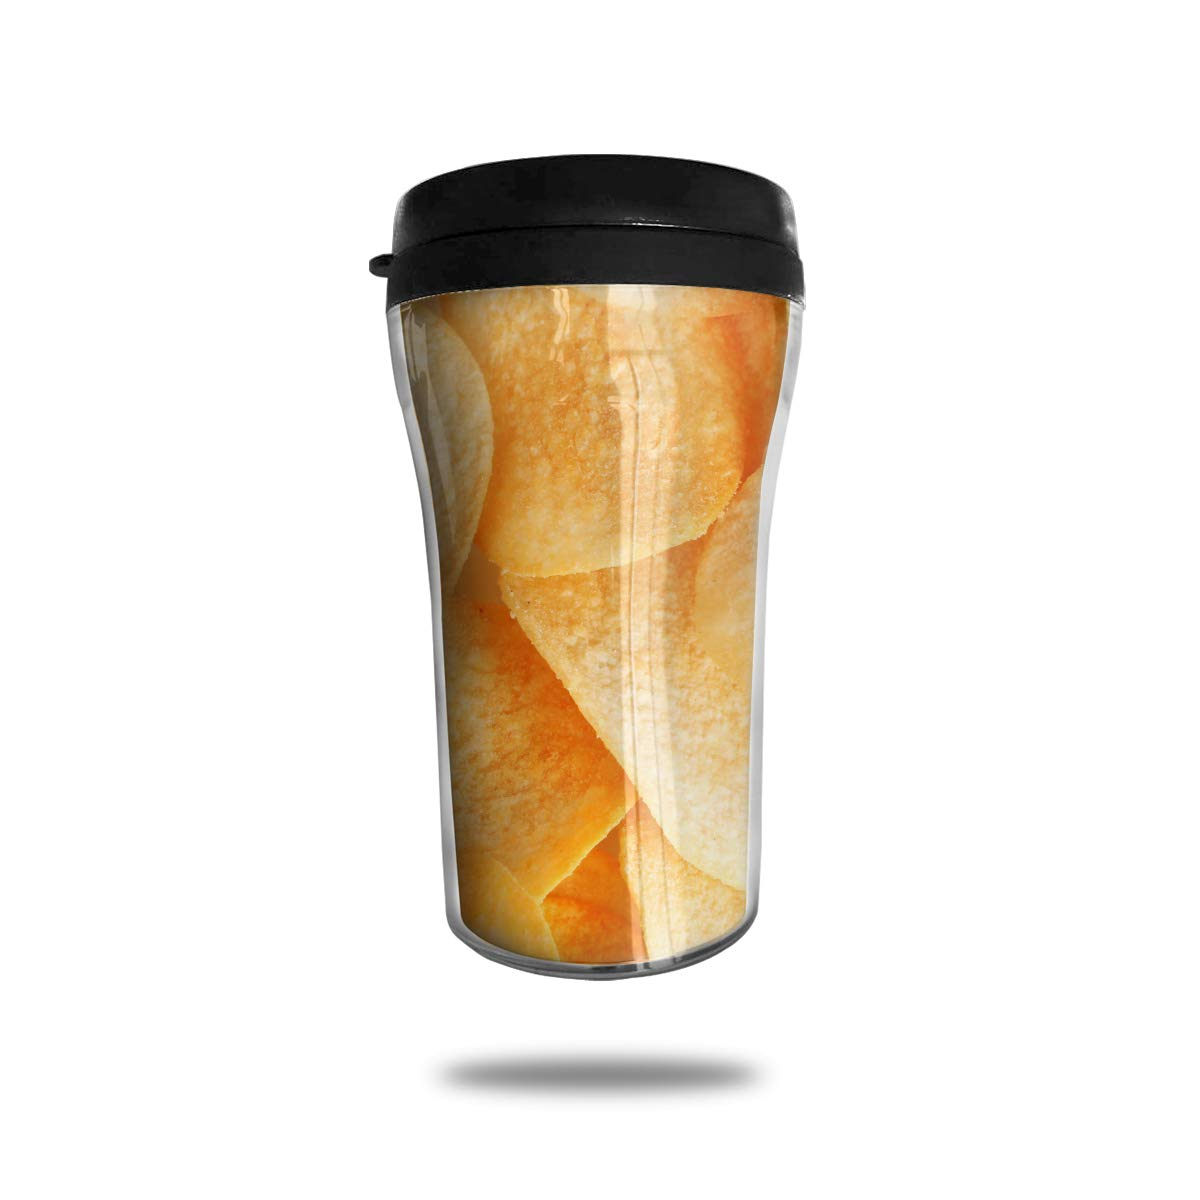 FTRGRAFE Funny Potato Chips Pattern Travel Coffee Mug 3D Printed Portable Vacuum Cup,Insulated Tea Cup Water Bottle Tumblers for Drinking with Lid 8.54 Oz (250 Ml)